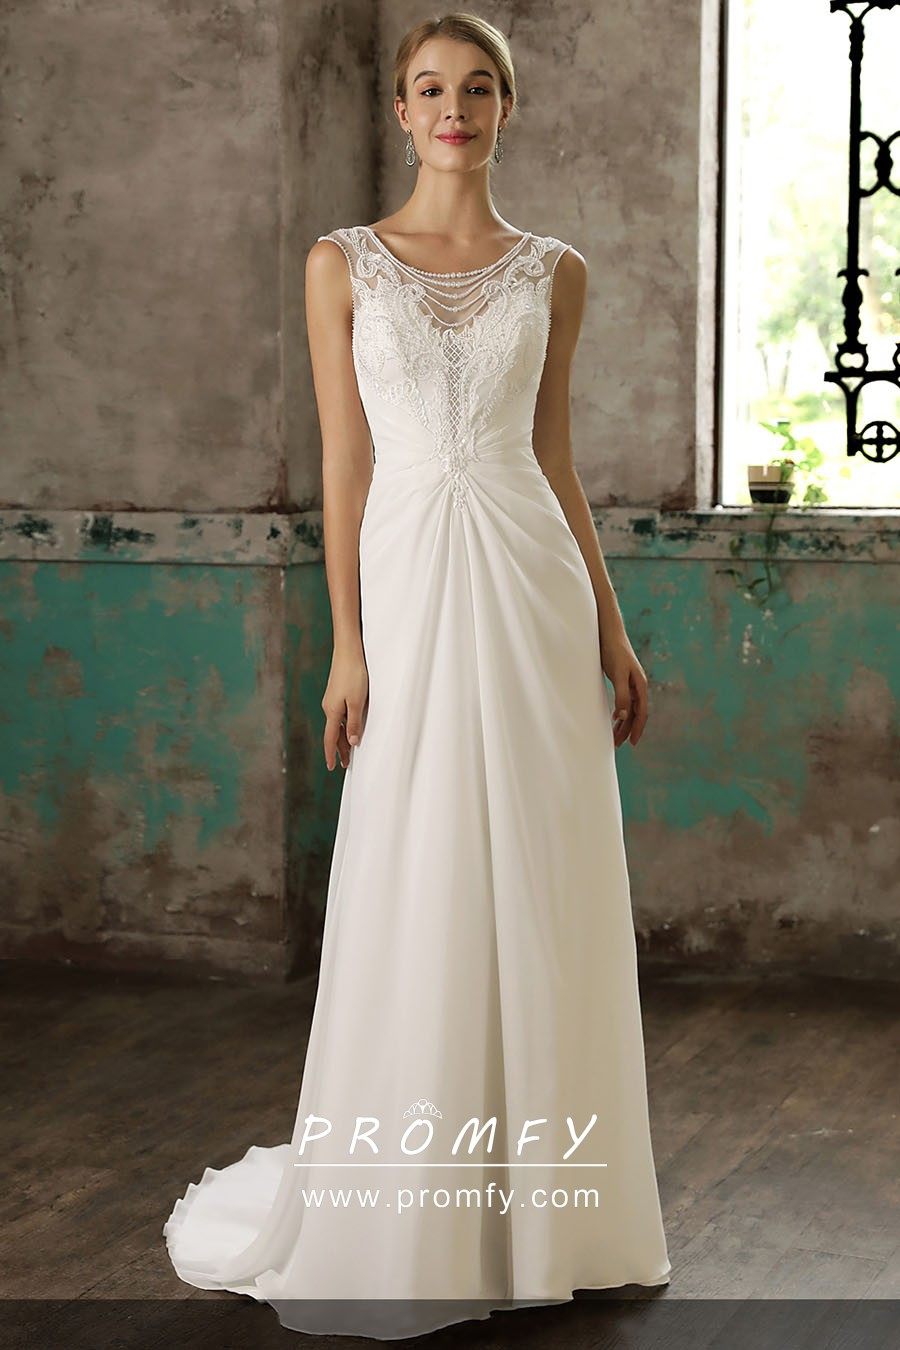 Pearl Embellished Illusion Lace Long Wedding Dress Promfy